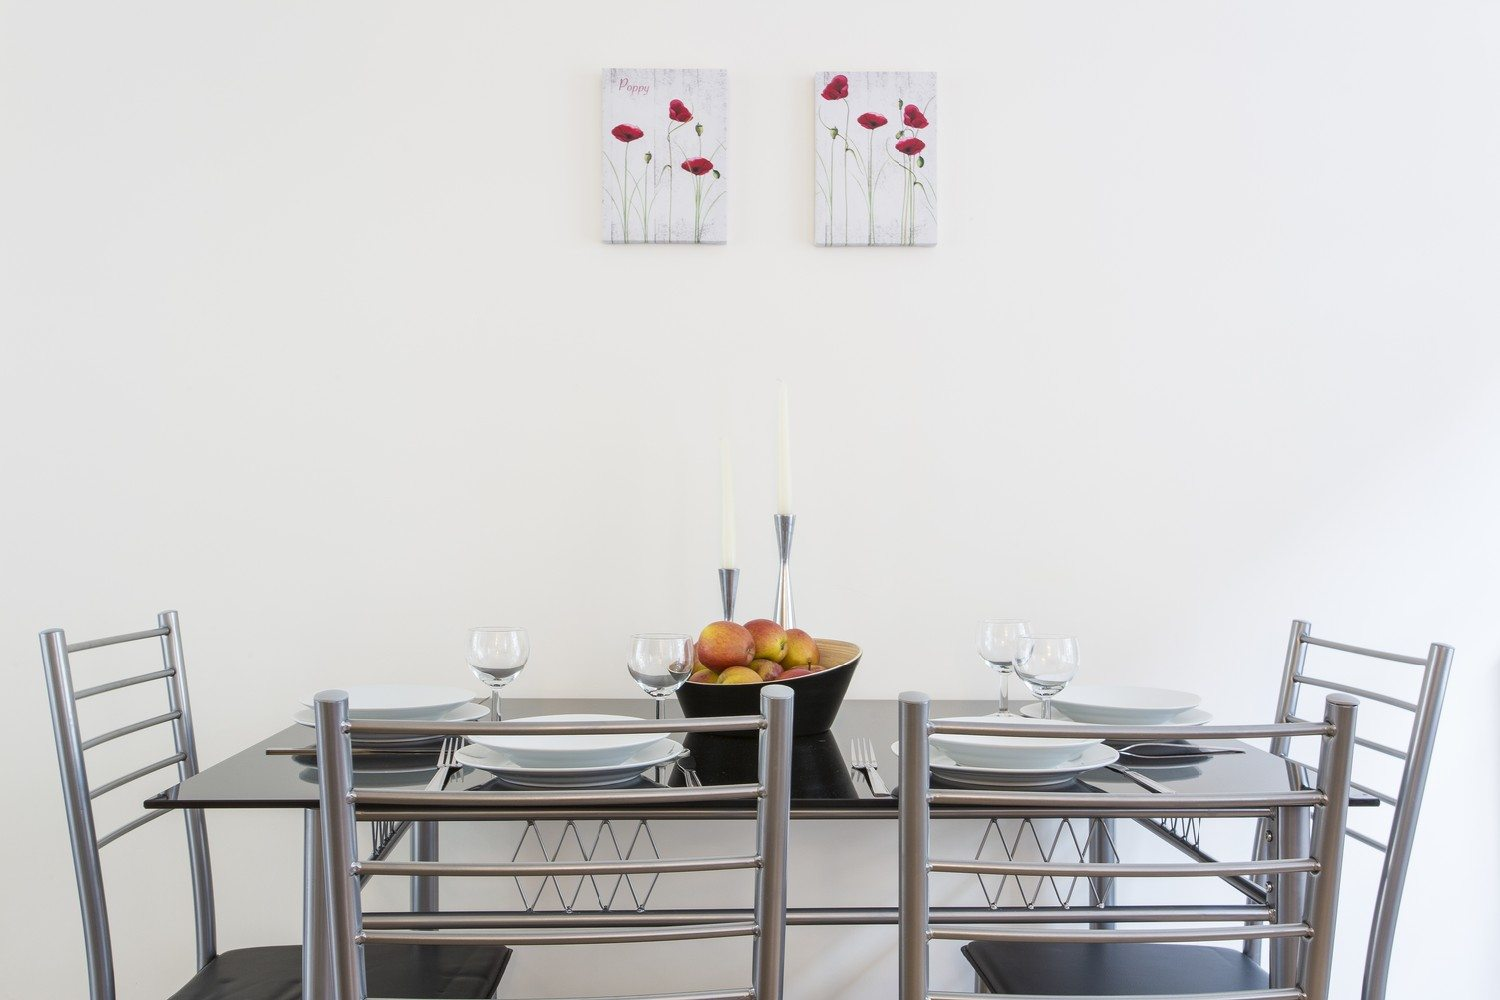 Liverpool Street Serviced Accommodation Artillery Lane Apartments Dining Table